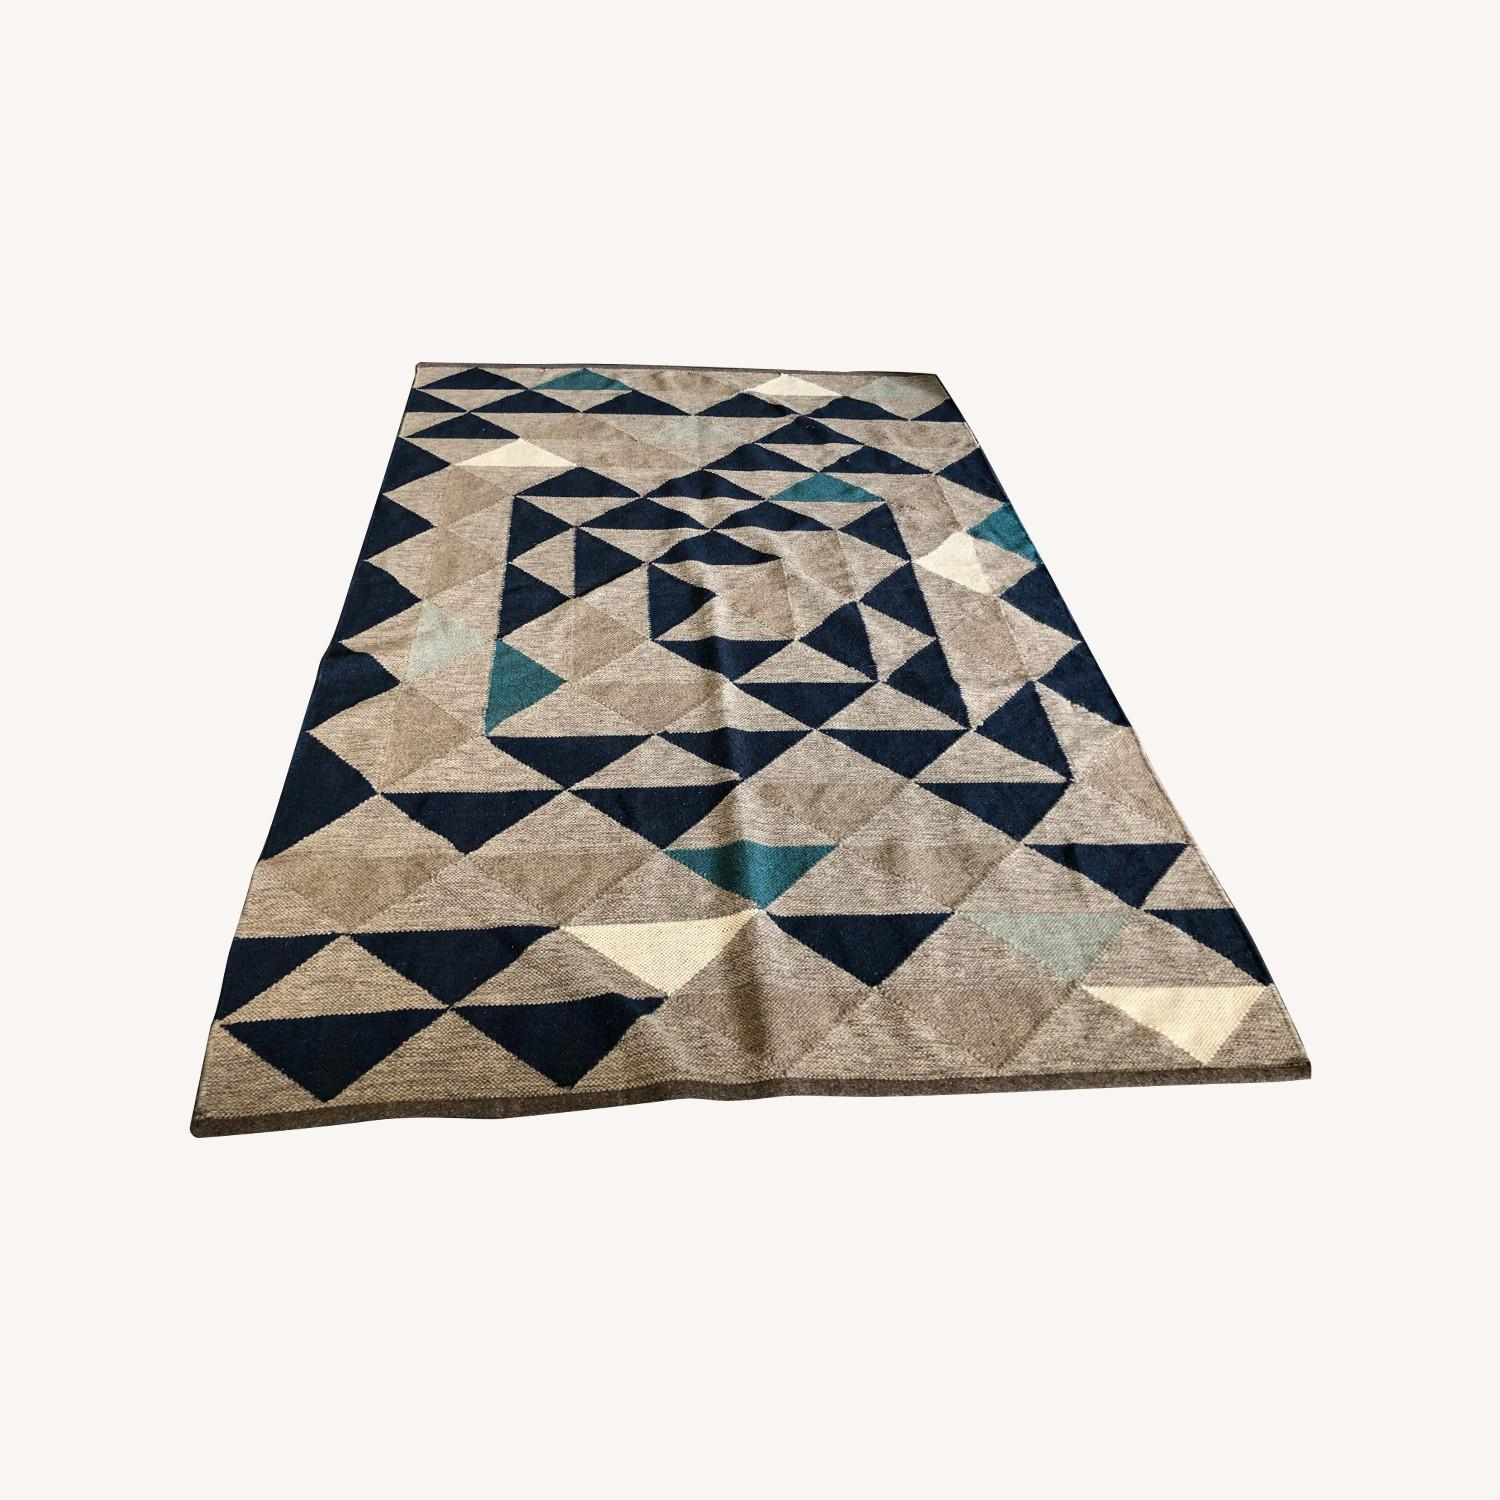 West Elm Carpet - image-0